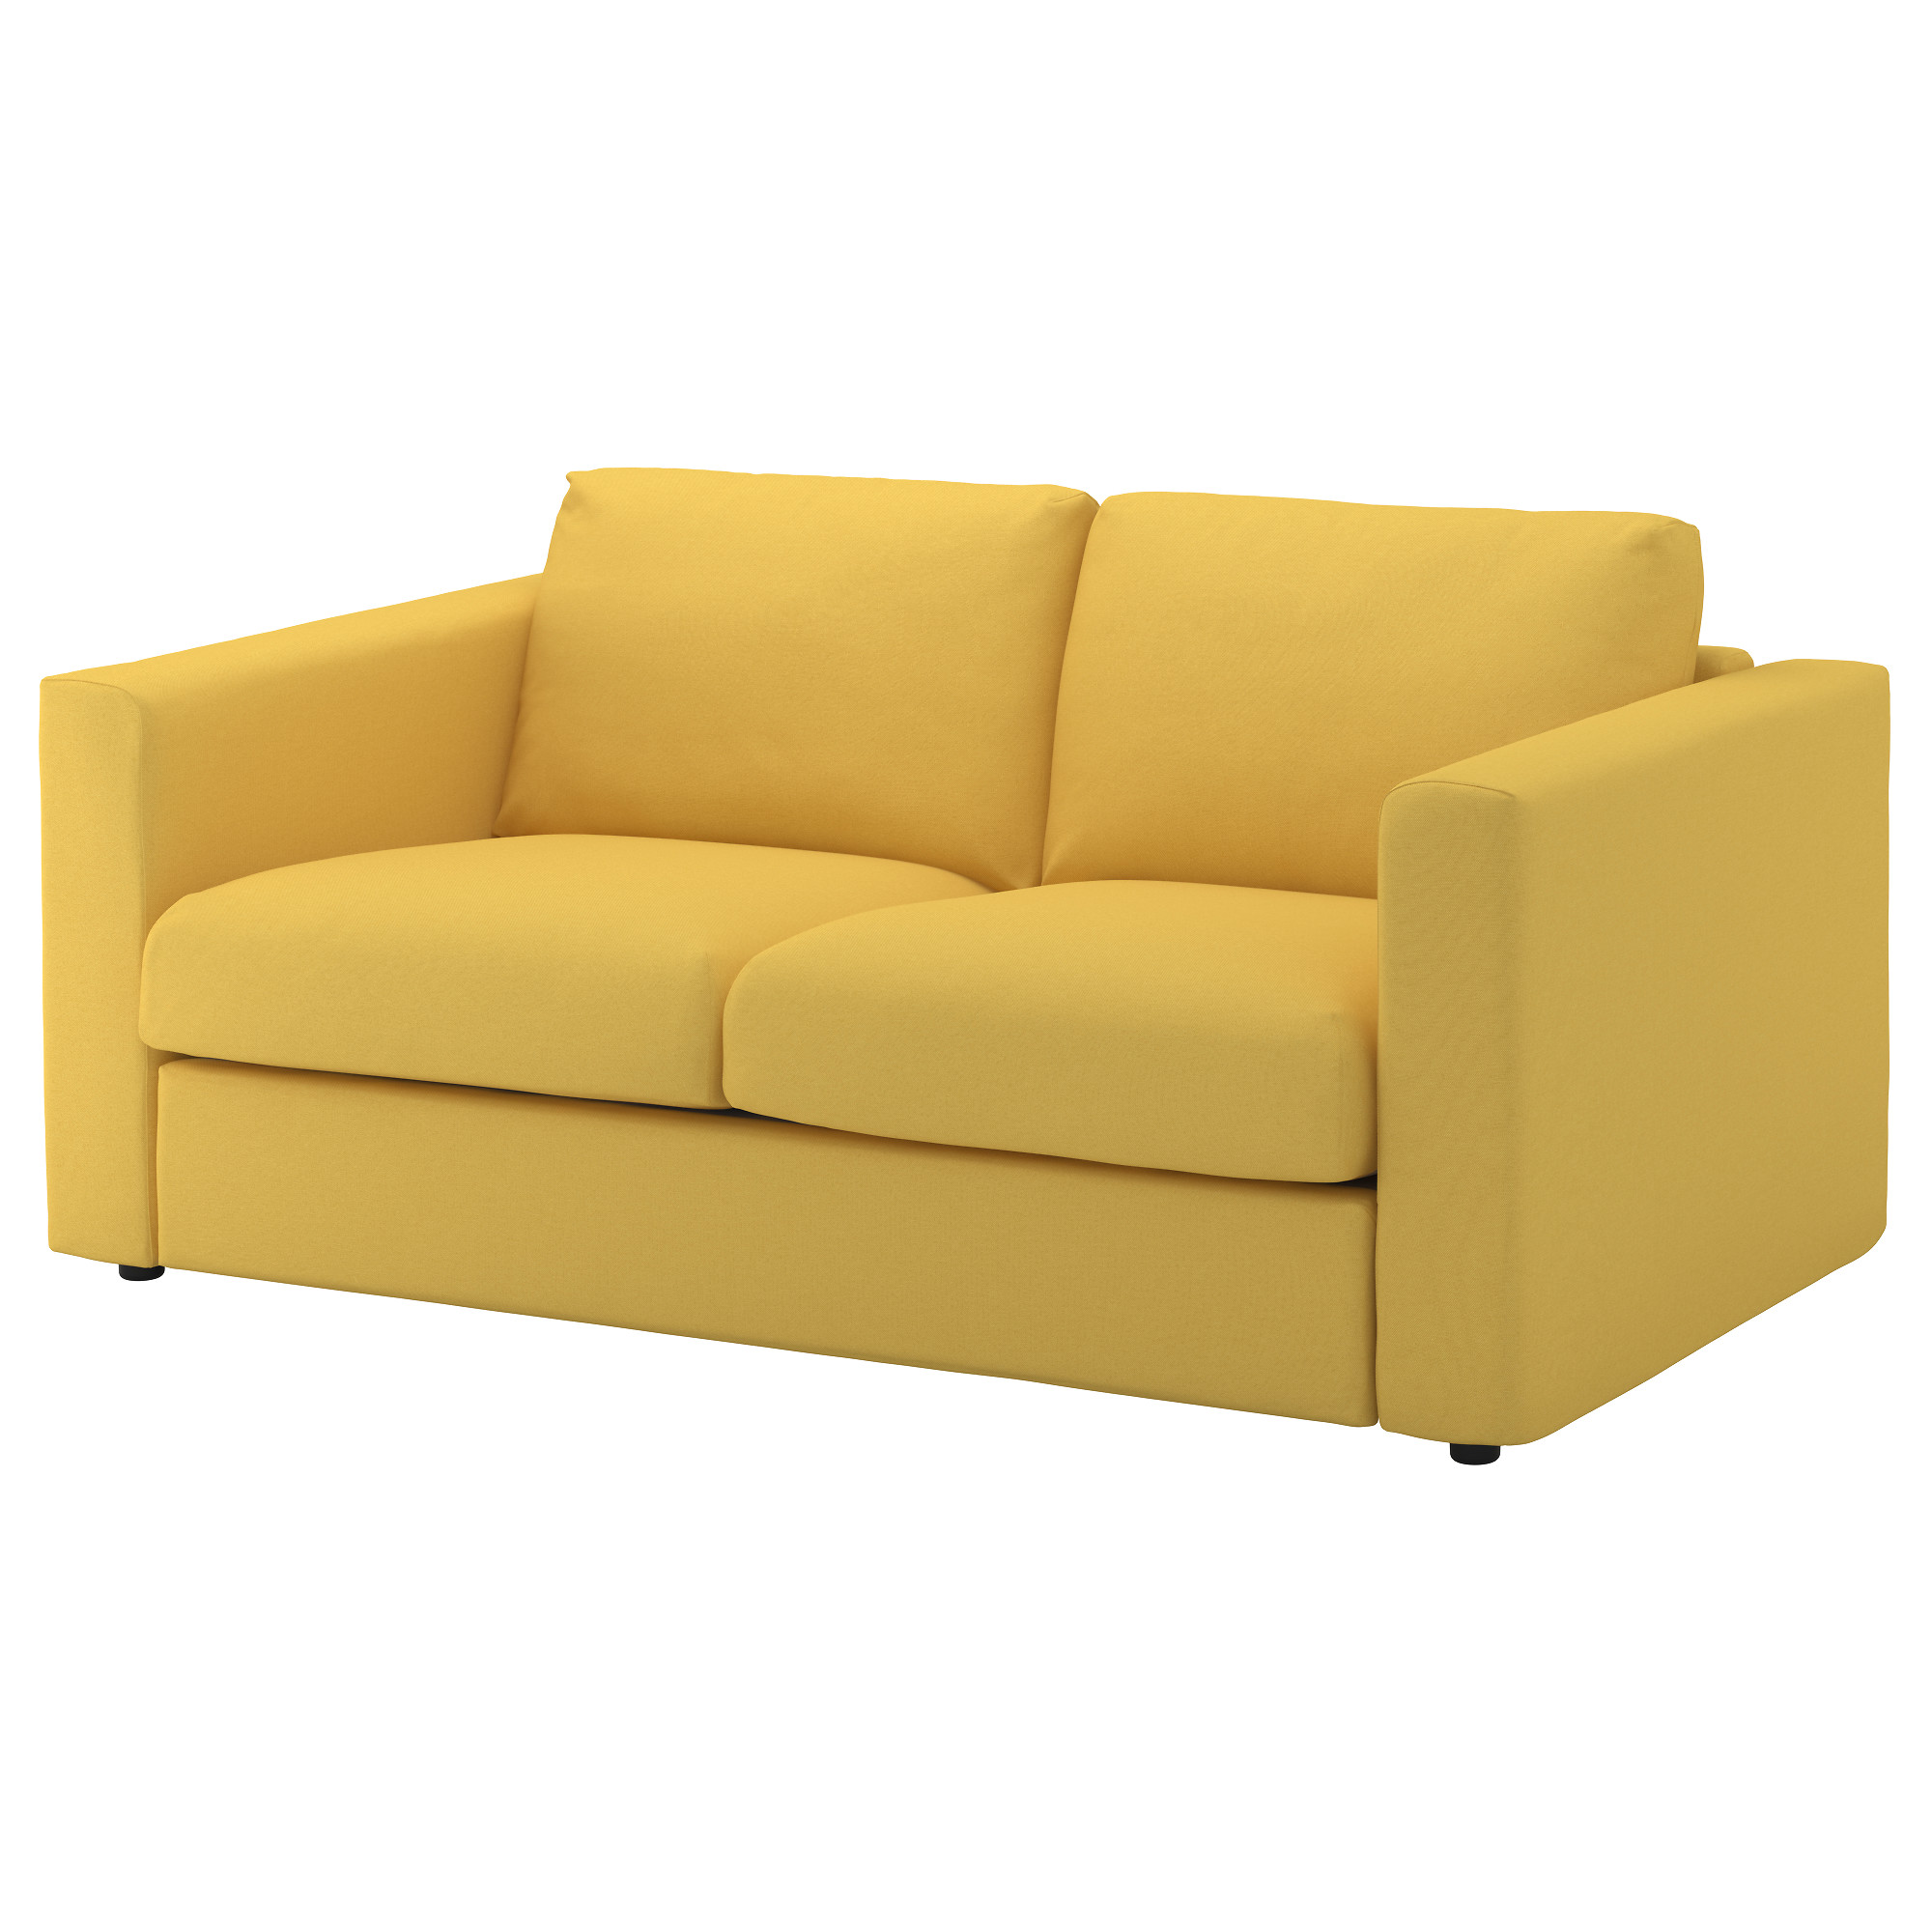 VIMLE loveseat, Orrsta golden-yellow Height including back cushions: 31 1/2